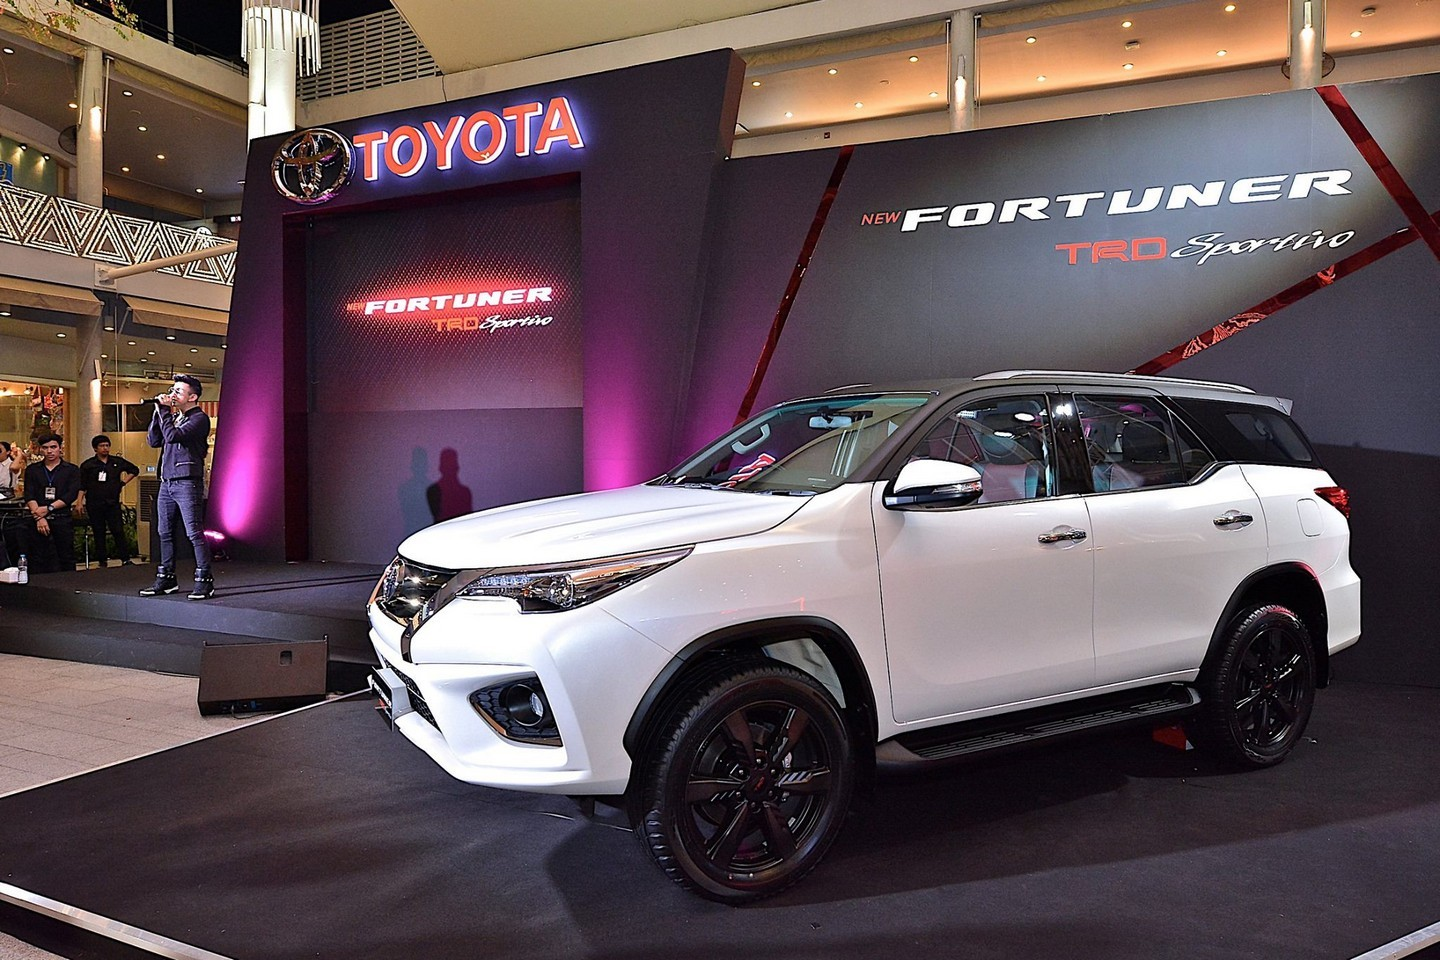 New Toyota Fortuner Trd Sportivo Is A Hilux Suv With